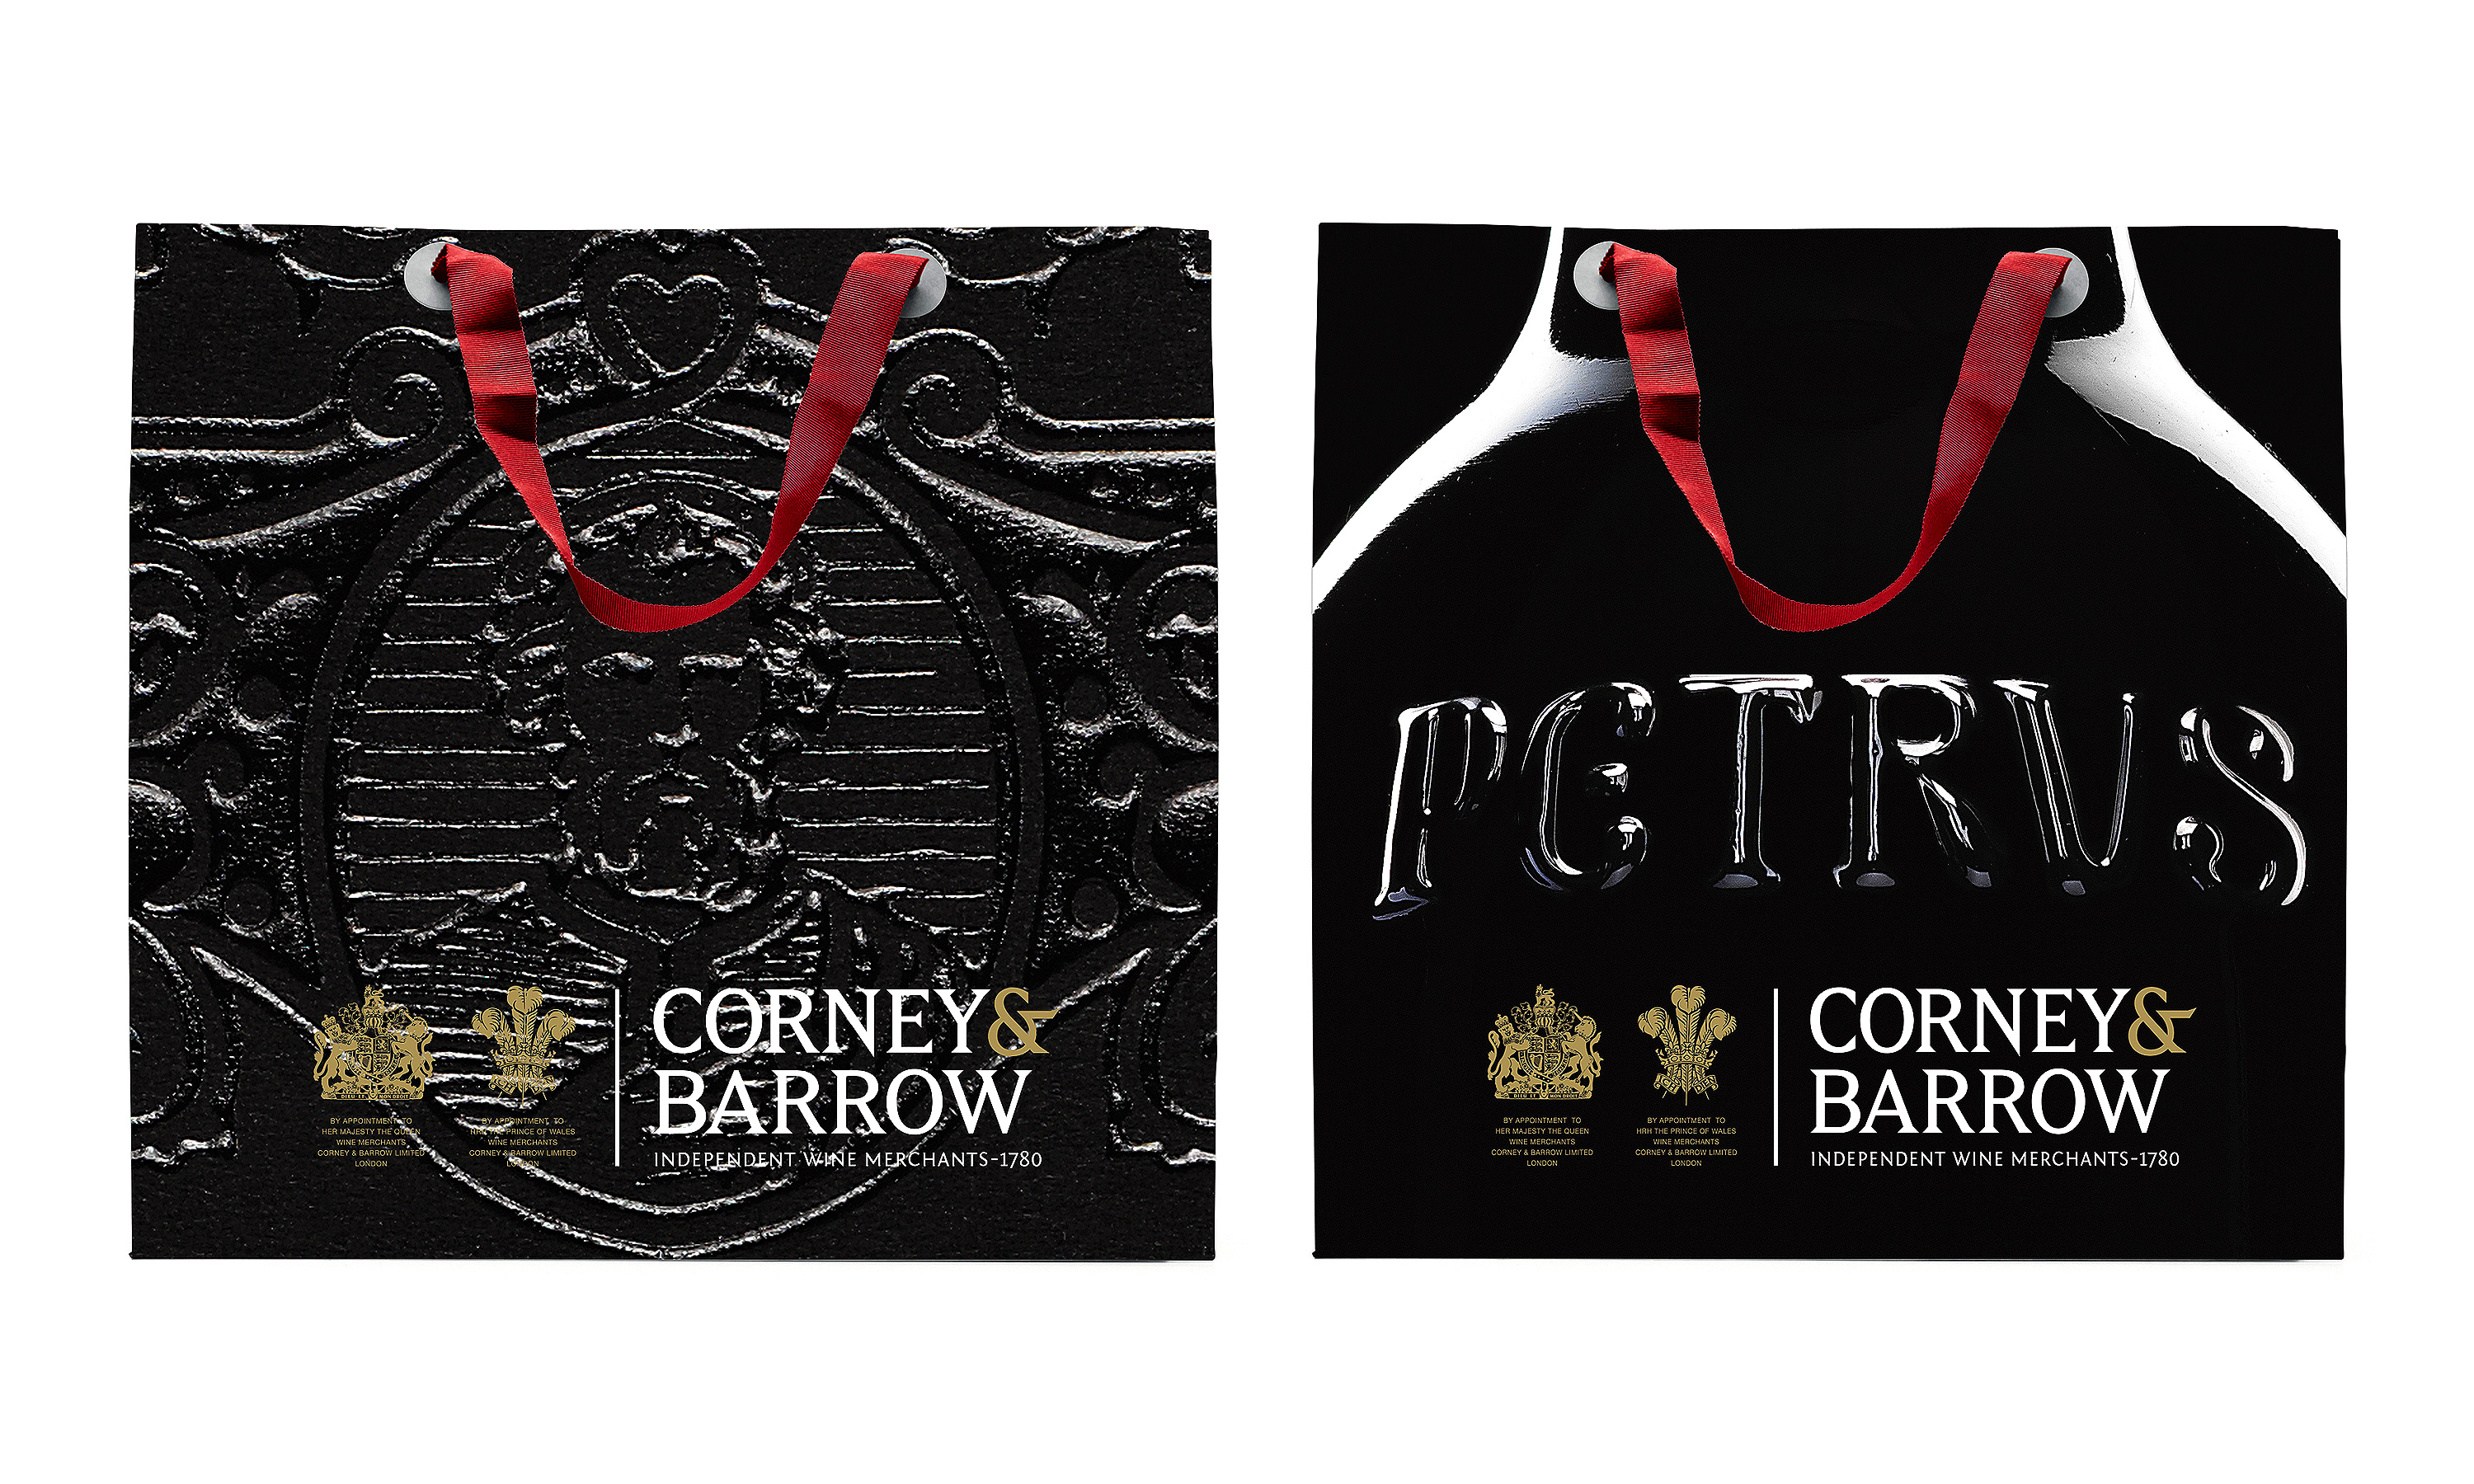 By Dana Robertson Creative Director and Founder of Neon. Corney & Barrow promotional bags featuring Pétrus, part of the Corney & Barrow brand identity and visual language refresh designed to help position Corney & Barrow as the leading UK and international premium independent Wine Merchants. – Idea, art direction and design by Neon Design & Branding Consultancy www.neon-creative.com